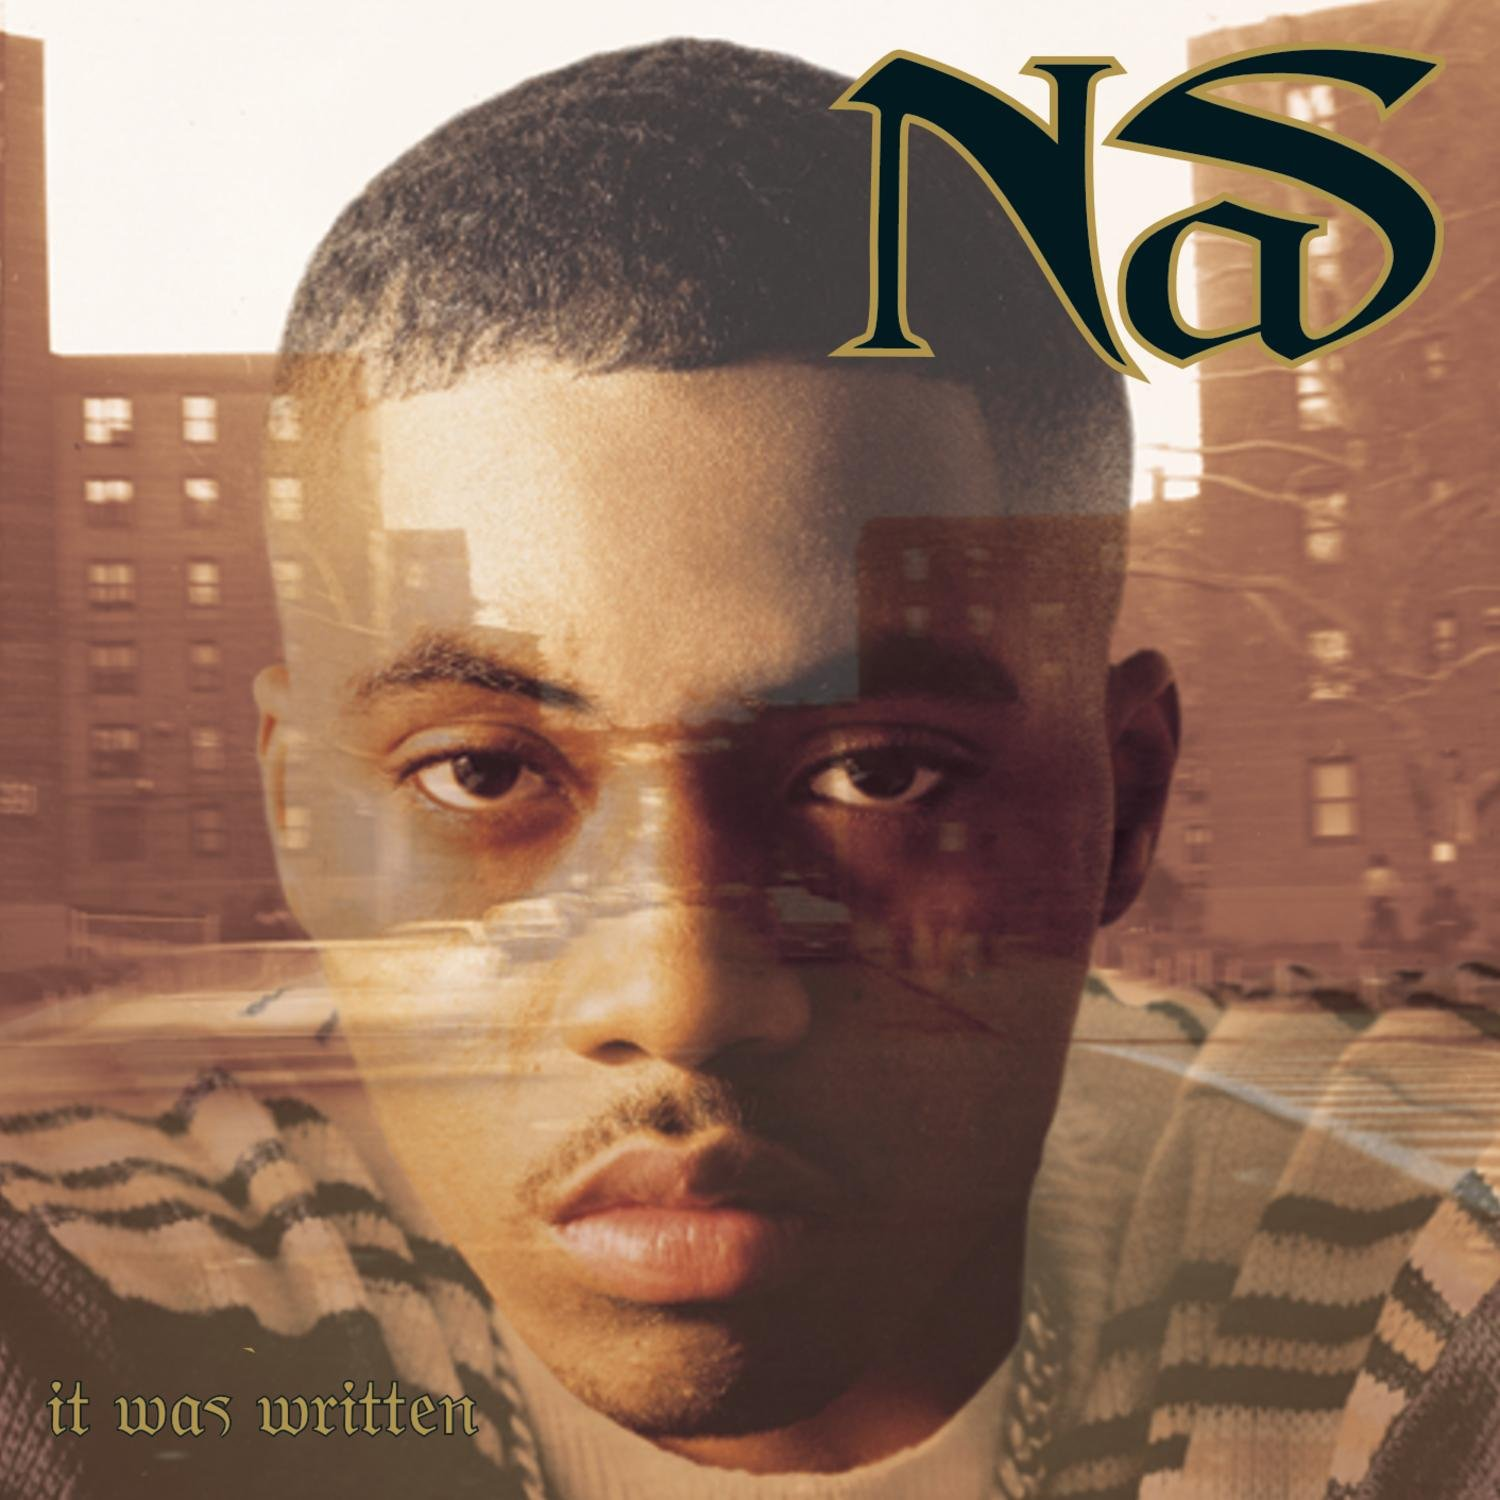 Today In Hip Hop History: Nas Drops His Sophomore Album 'It Was Written' 23 Years Ago